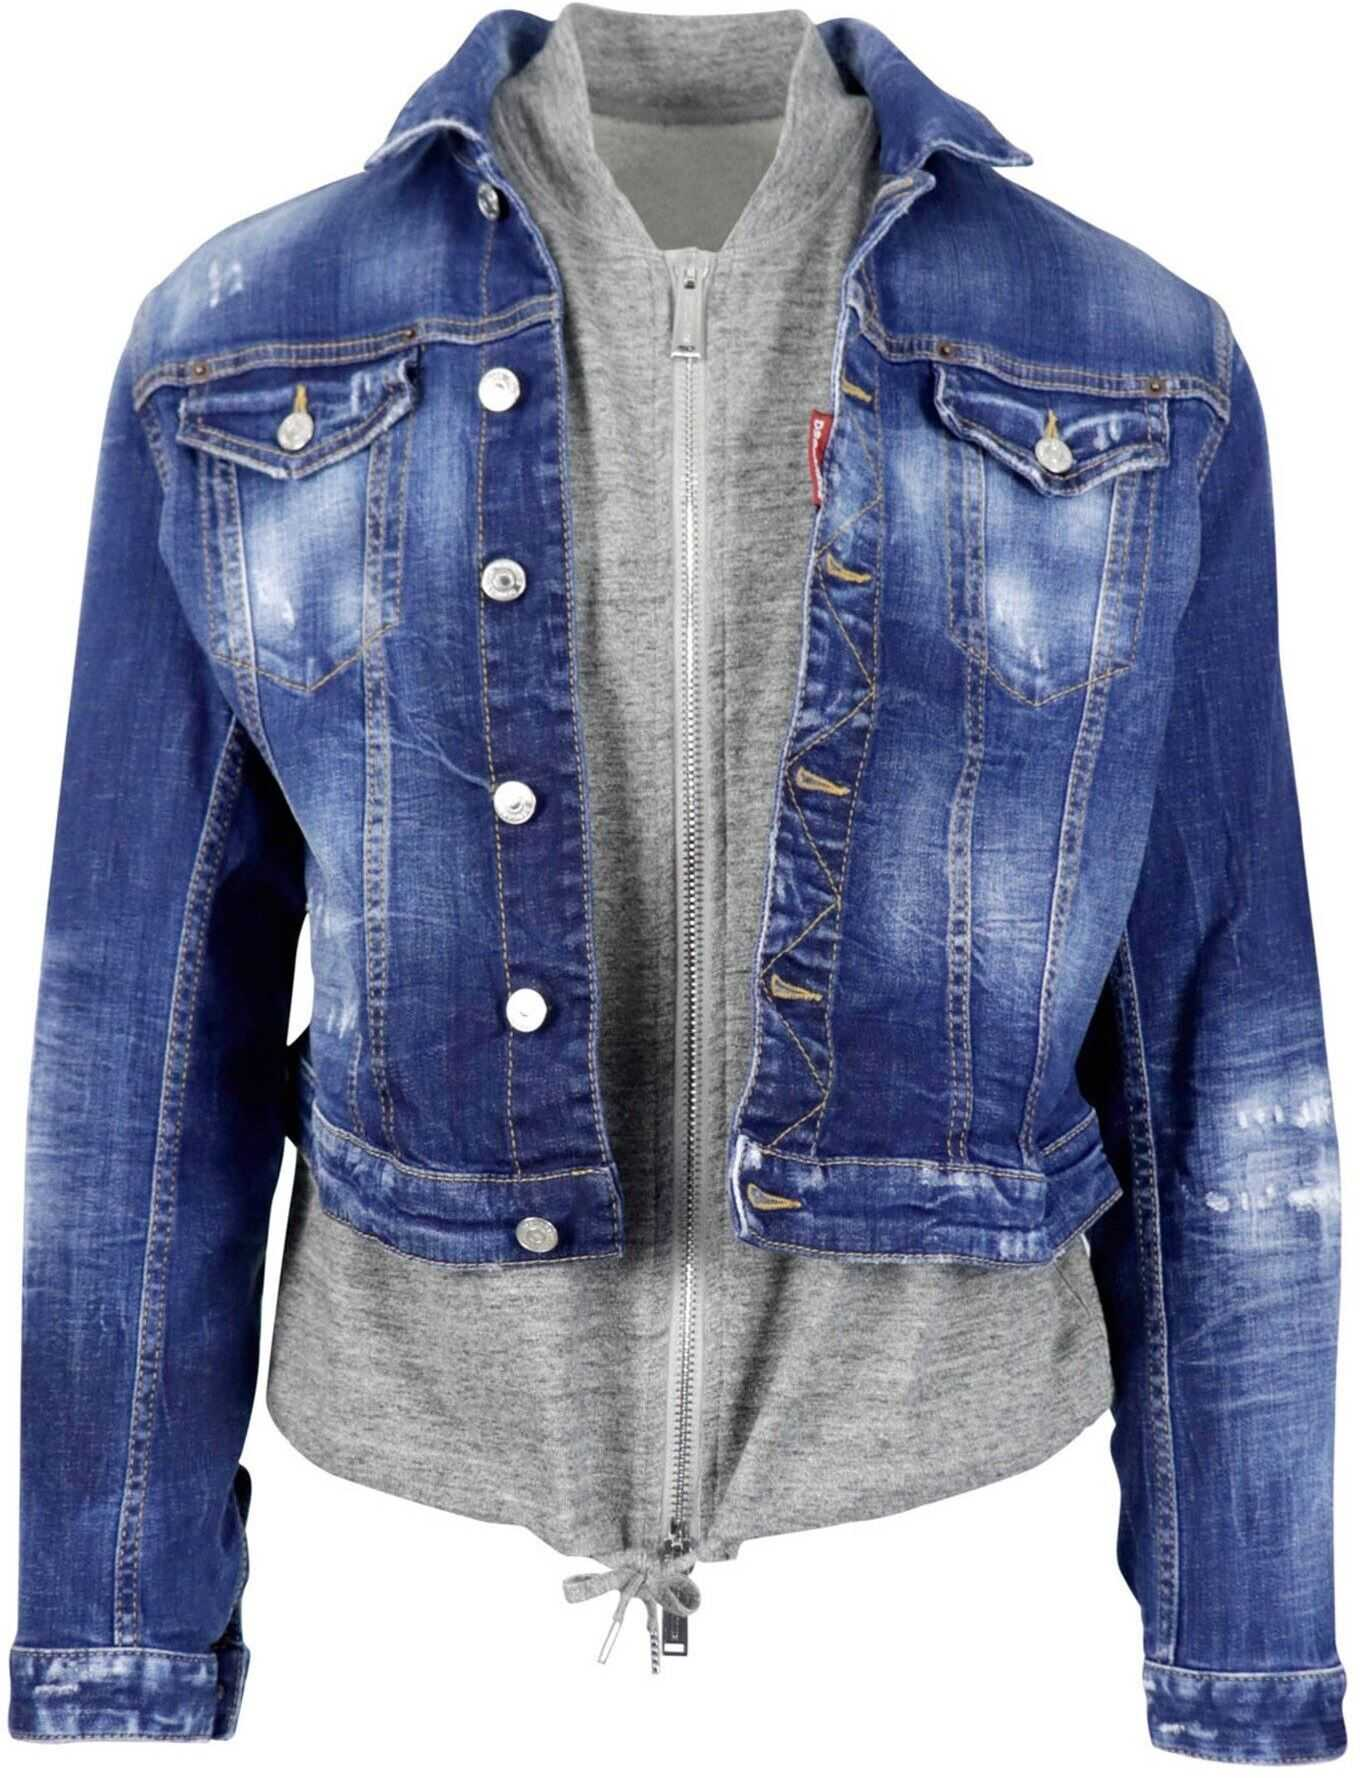 DSQUARED2 Layered Effect Denim Jacket In Blue Blue imagine